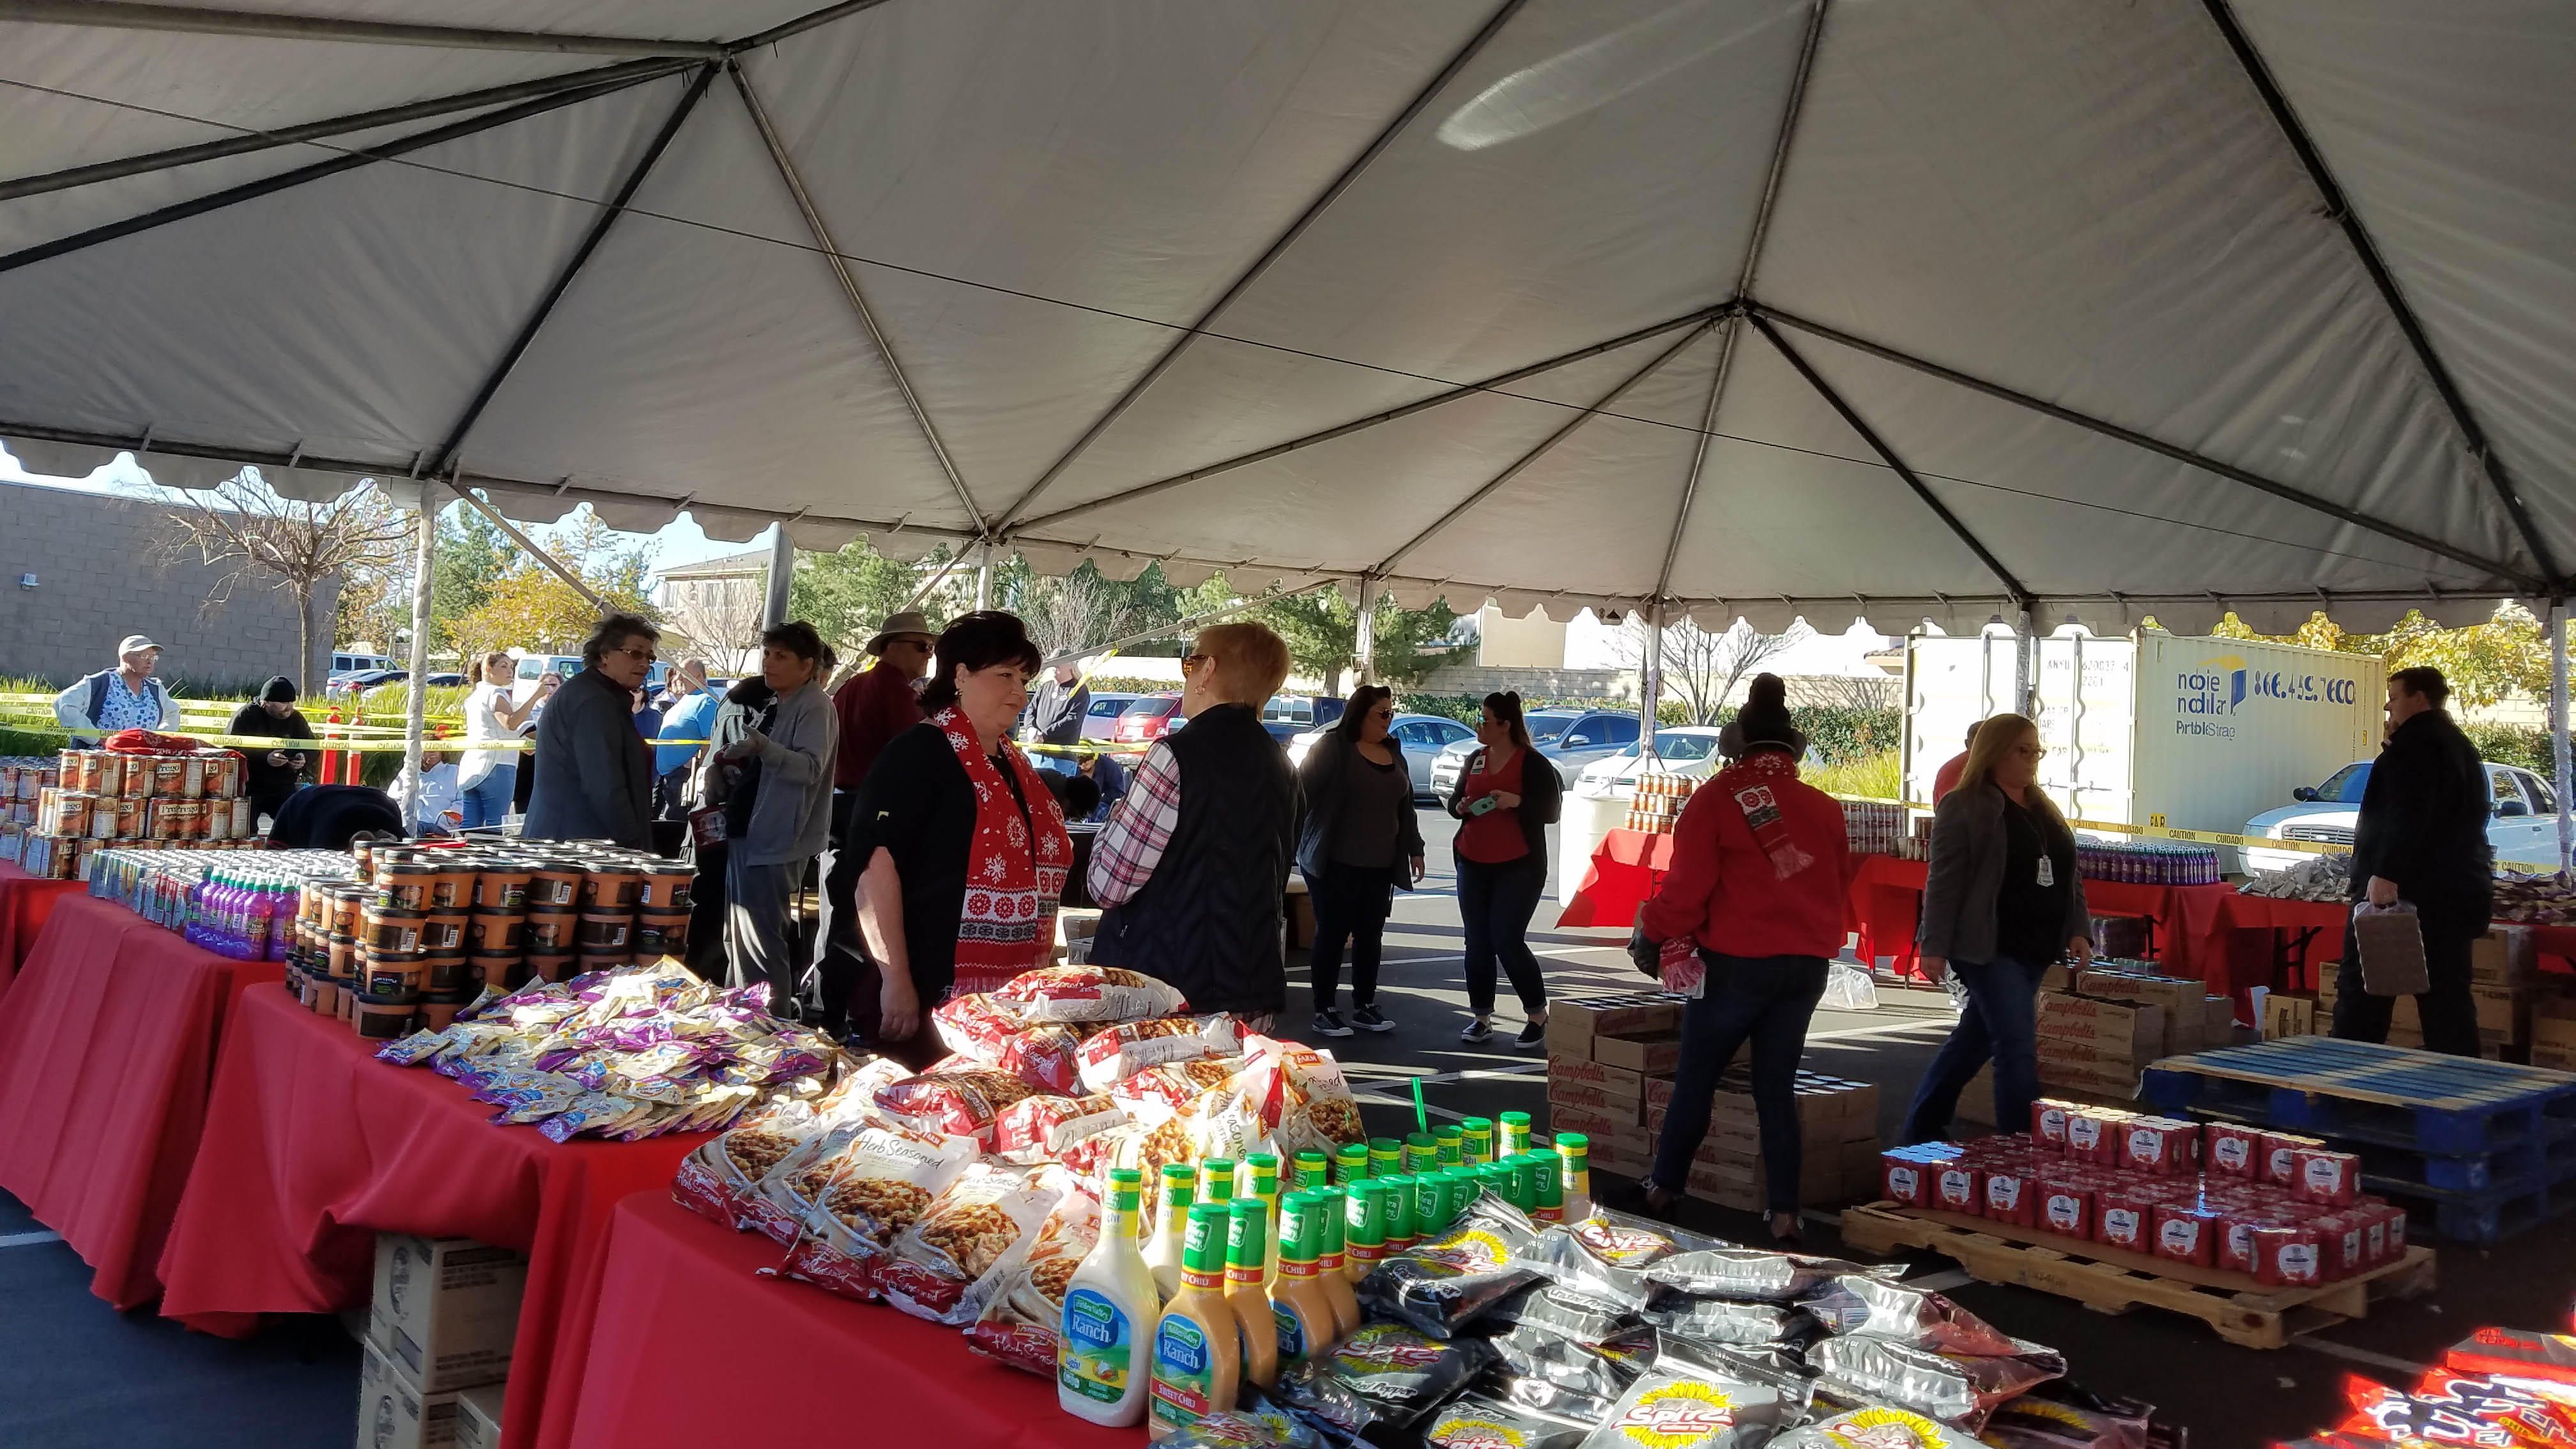 Photo gallery loma linda university health beaumont banning food loma linda university health beaumont banning served the communities of beaumont banning and cherry hill with its annual food drive on friday dec 15 xflitez Image collections